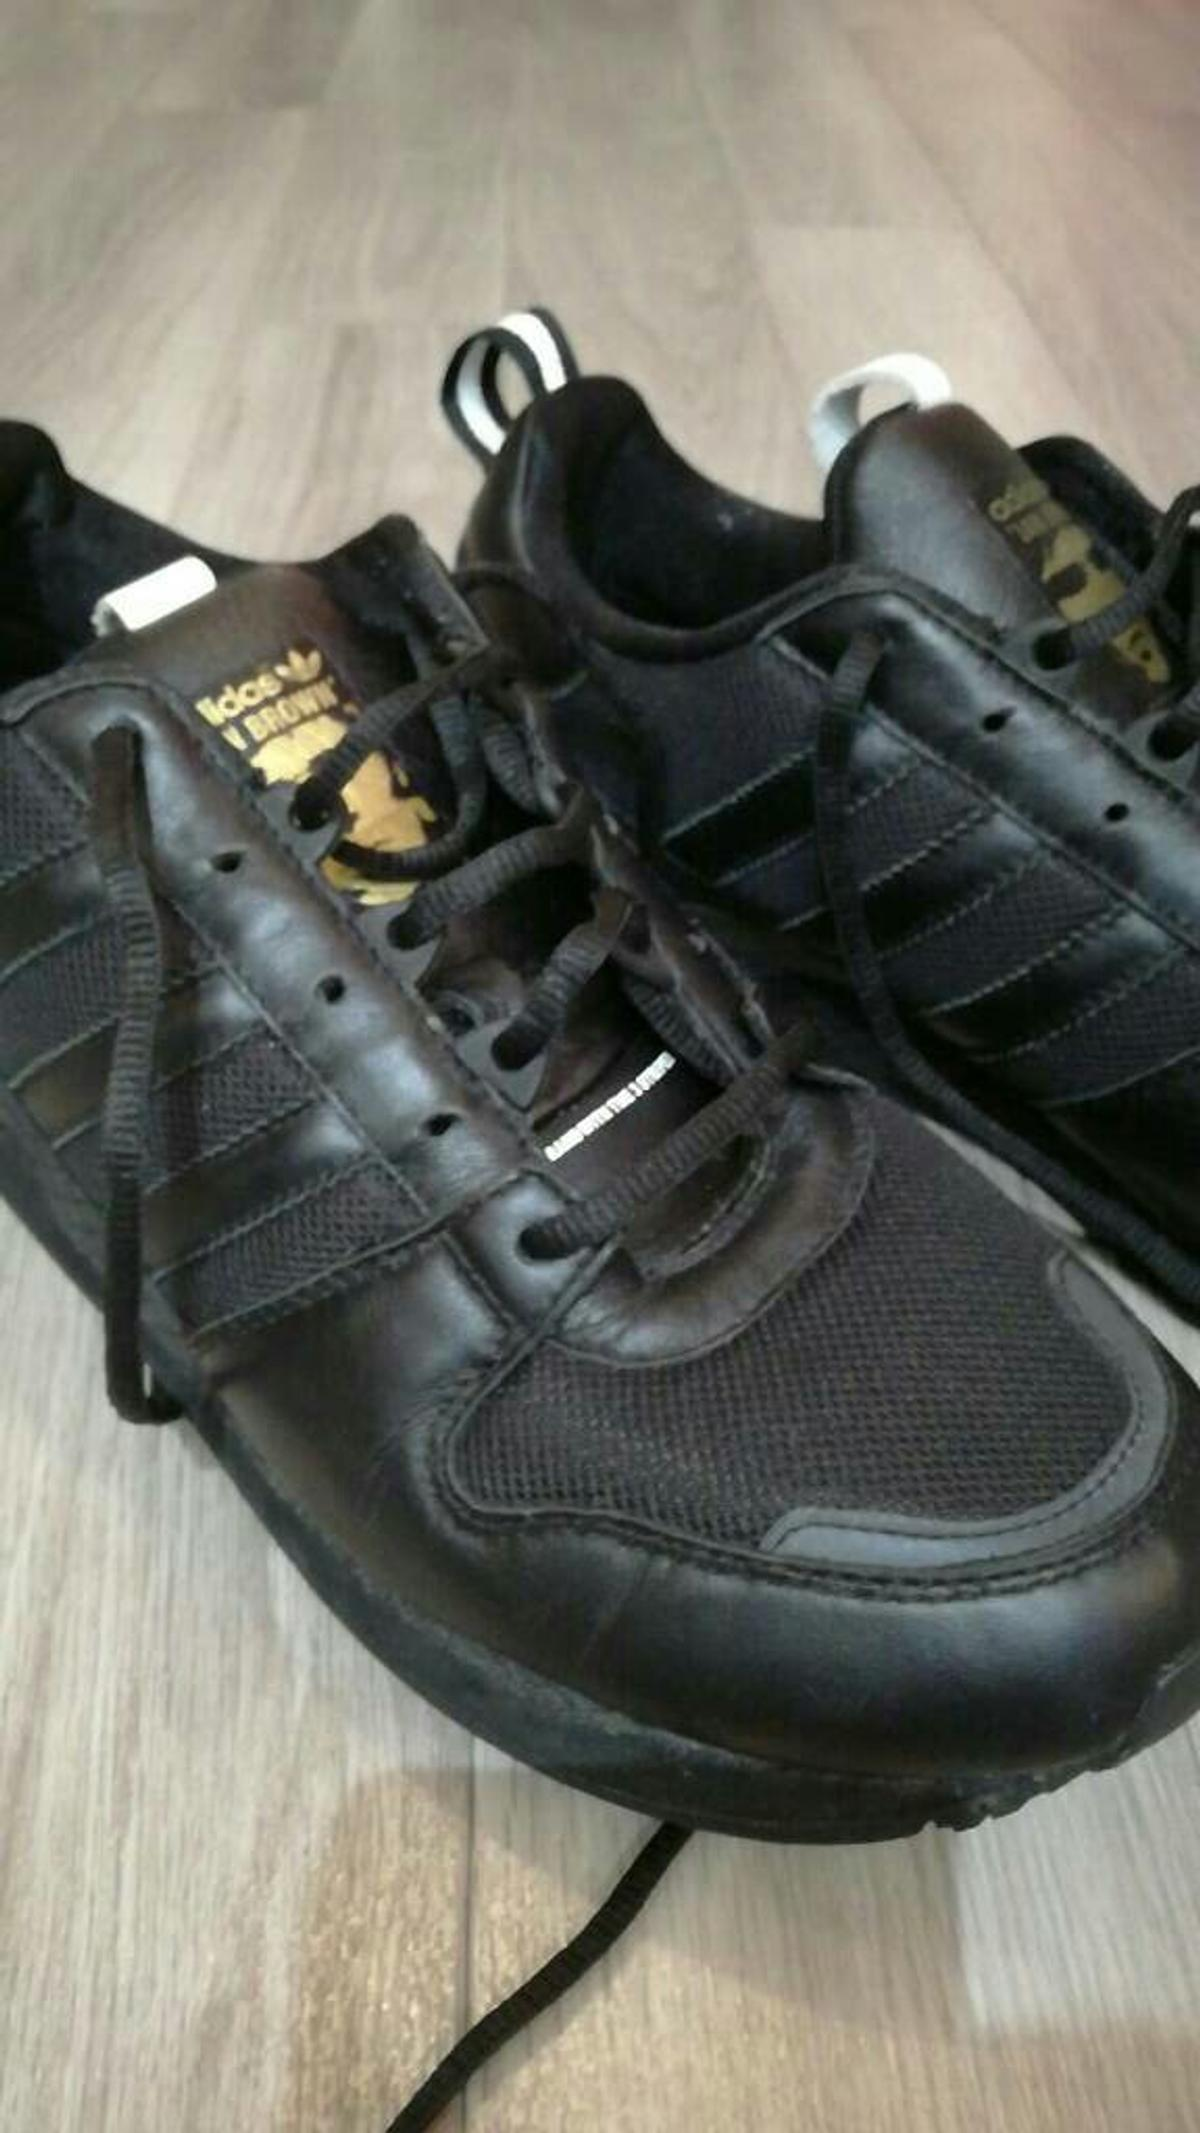 big sale d5a0e 740e7 Ian brown zx adidas trainers size 9 in Castle Point for ...